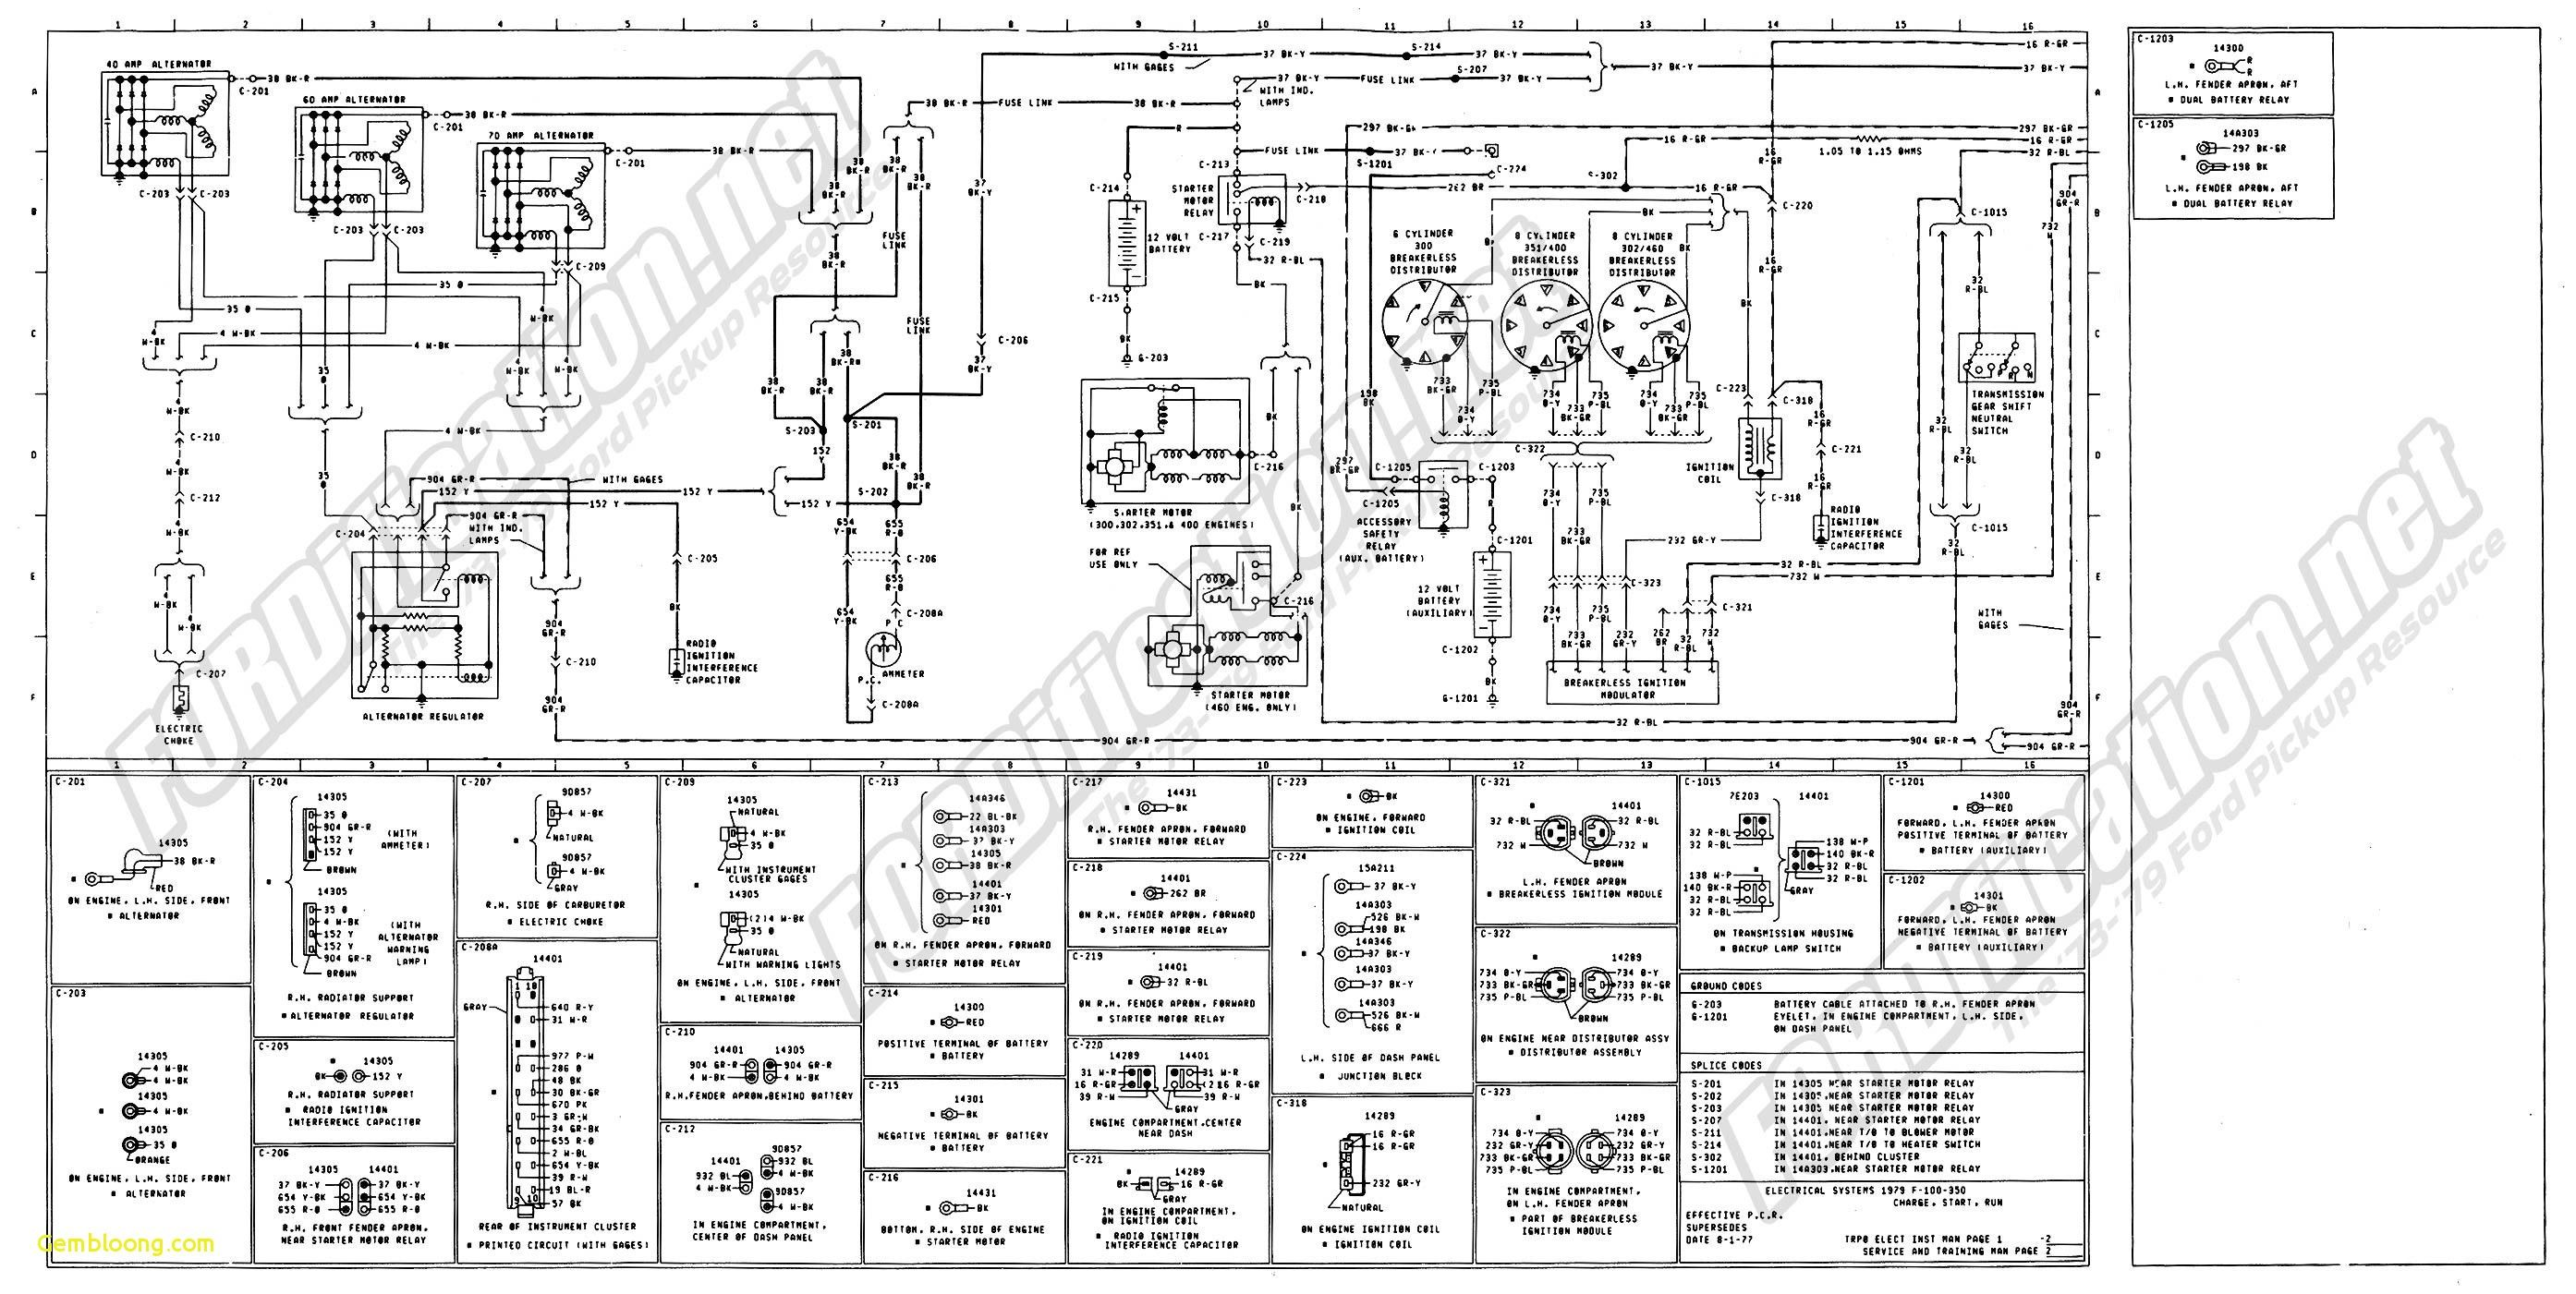 New Wiring Diagram Voltmeter Car Jeep Grand Cherokee Jeep Grand Diagram